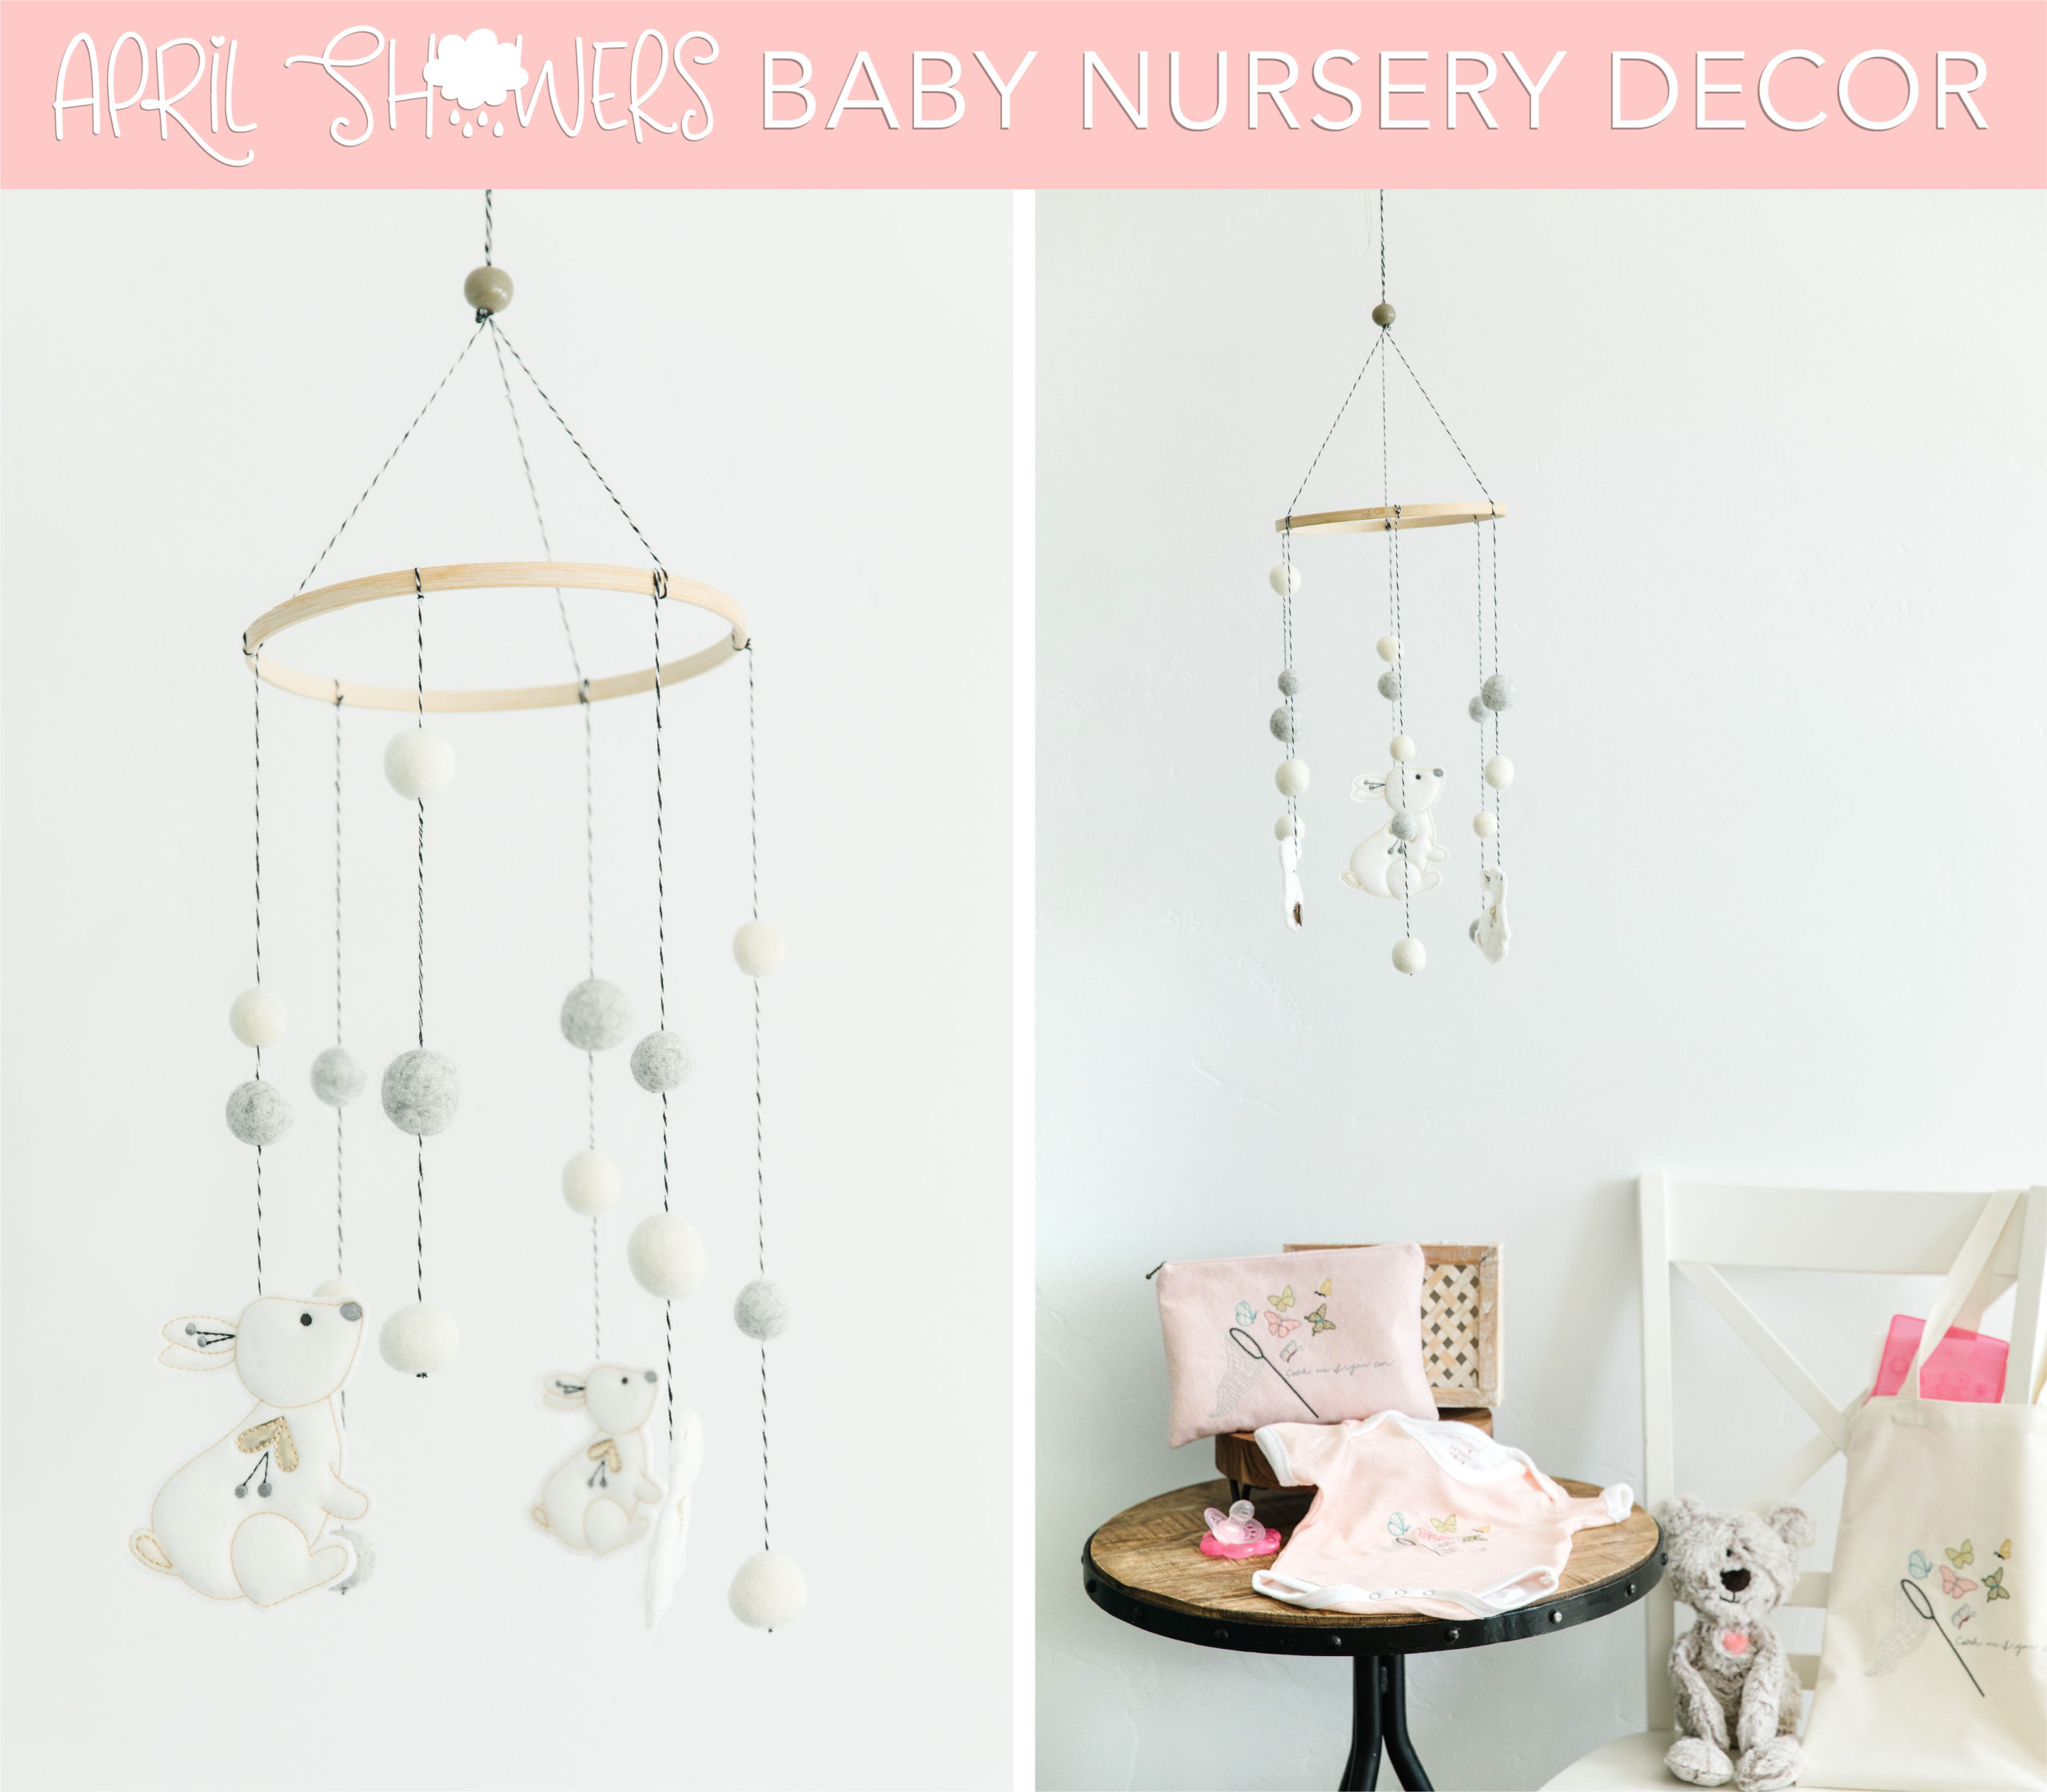 Baby nursery decor for sewing and machine embroidery